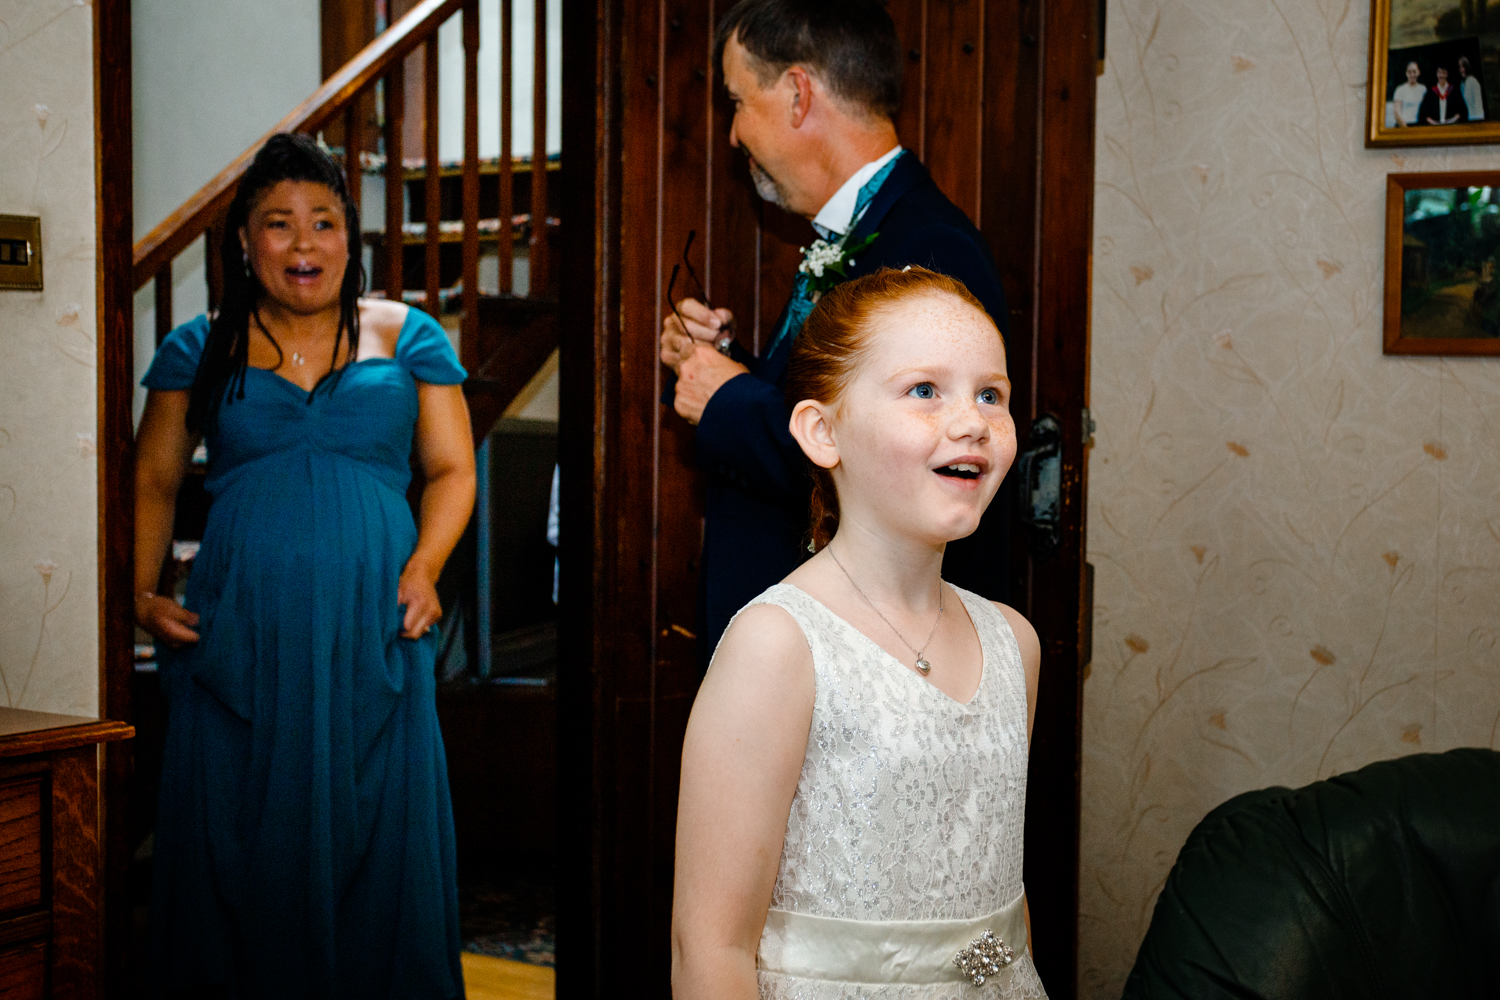 Lancashire-wedding-photographer-adele-and-alex-029.jpg